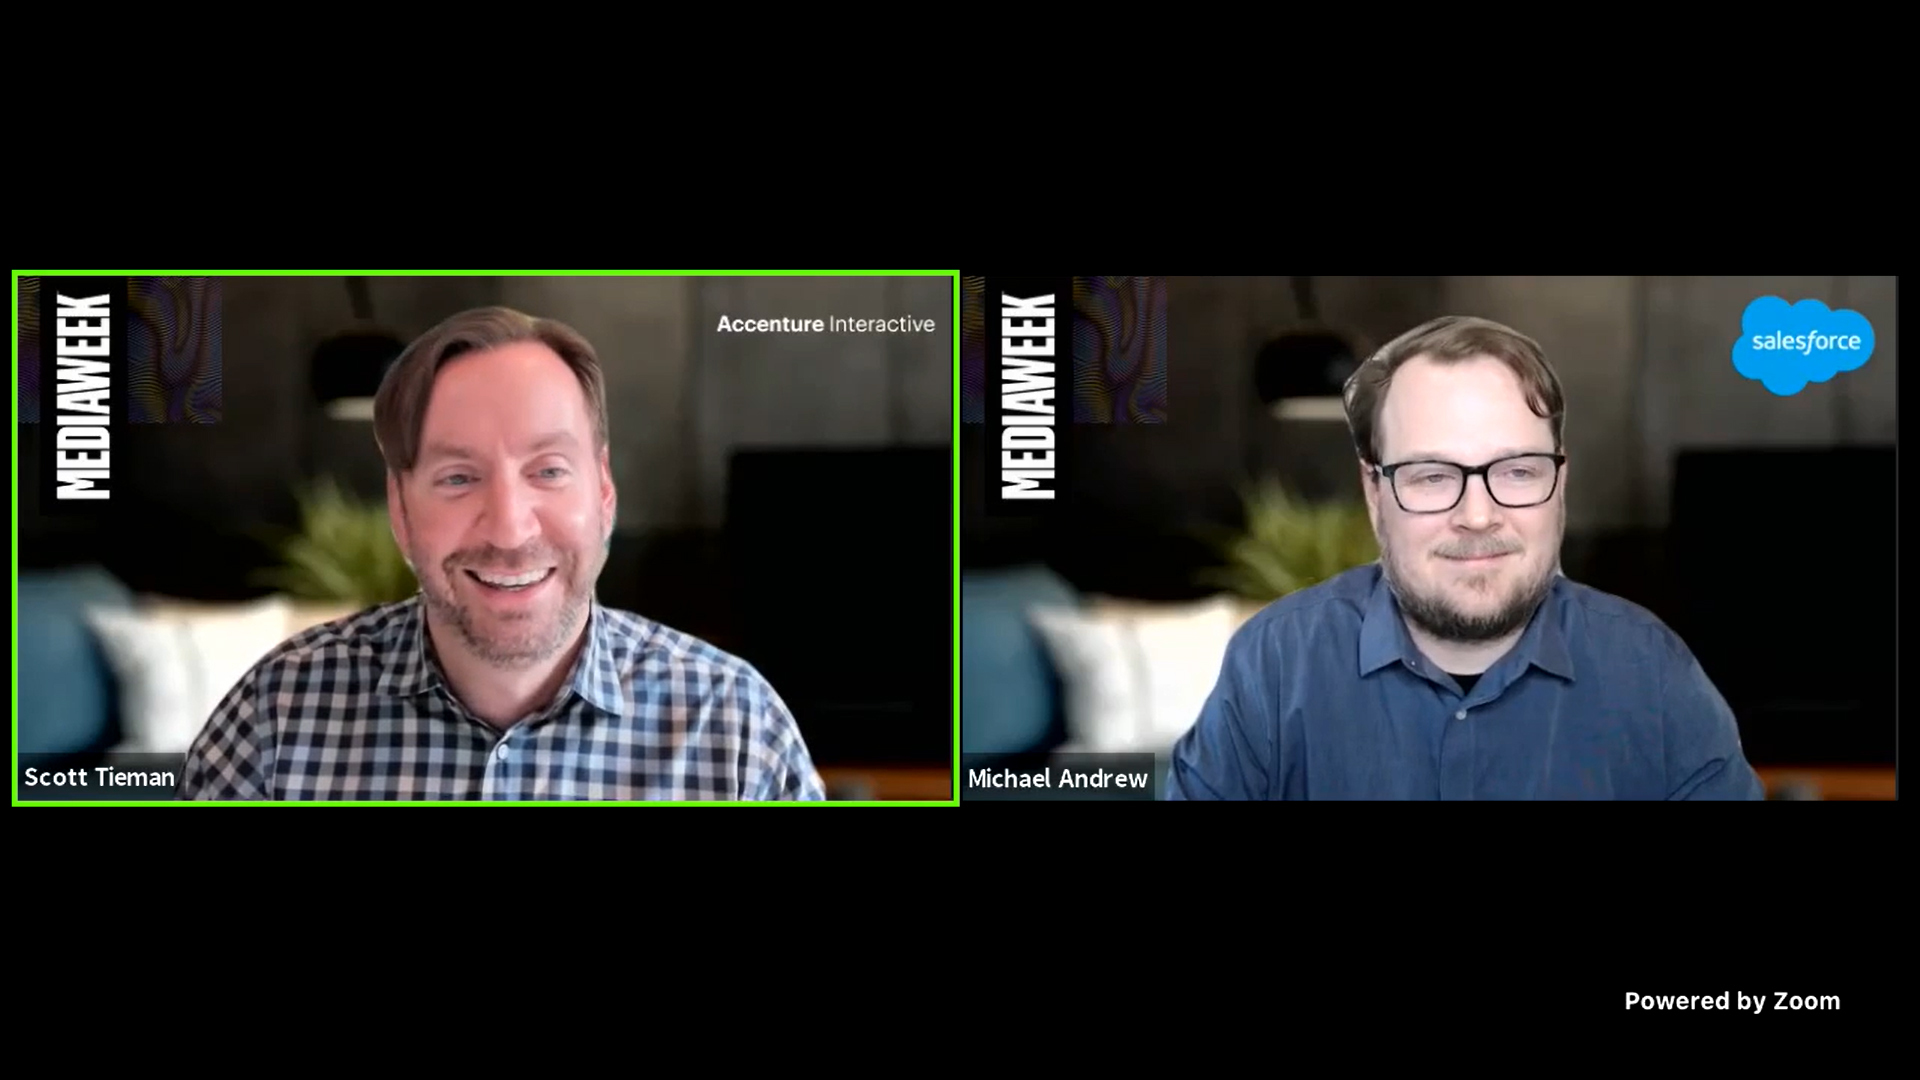 Accenture's Scott Tieman spoke with Salesforce vp of data, AI and personalization Michael Andrew at Adweek's Mediaweek.